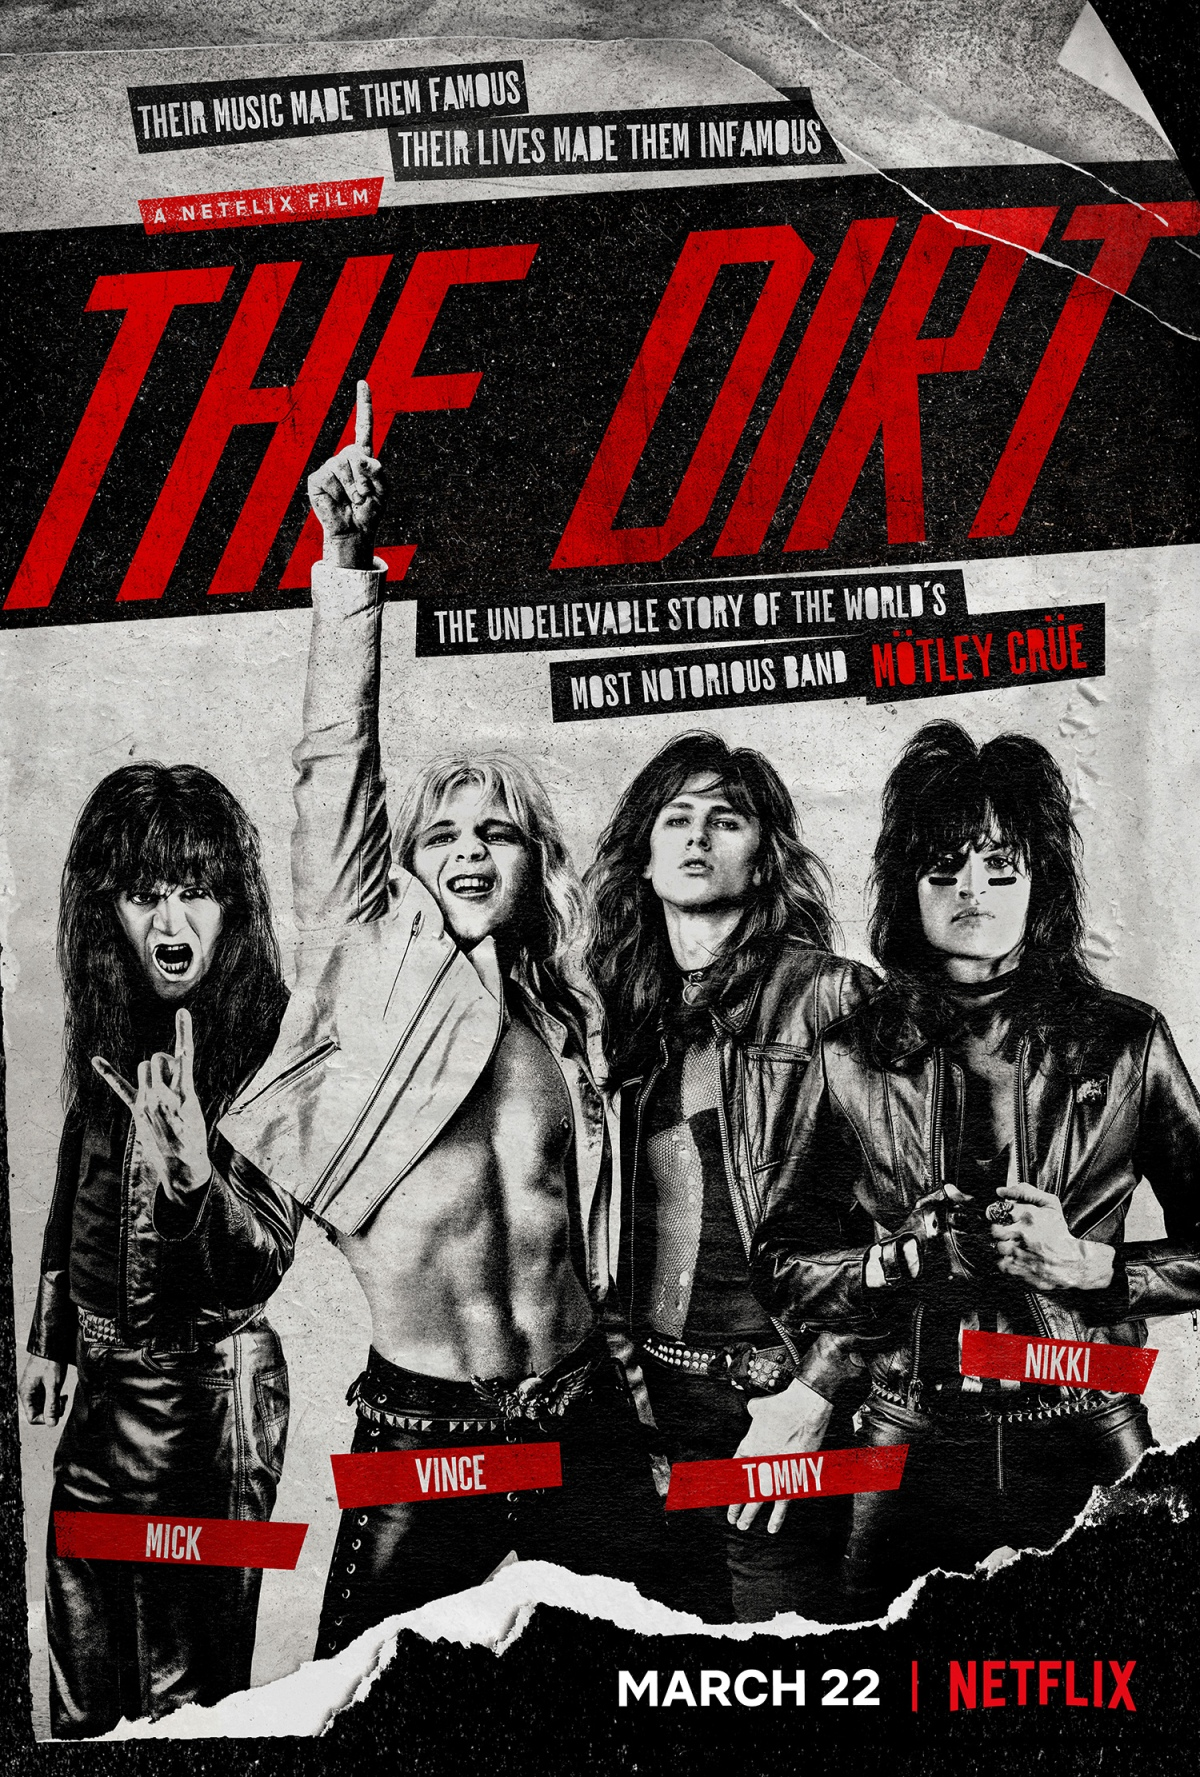 Tales of Rock – MÖTLEY CRÜE Movie 'The Dirt' Is Hated By Critics, Loved By Fans, Says NIKKI SIXX